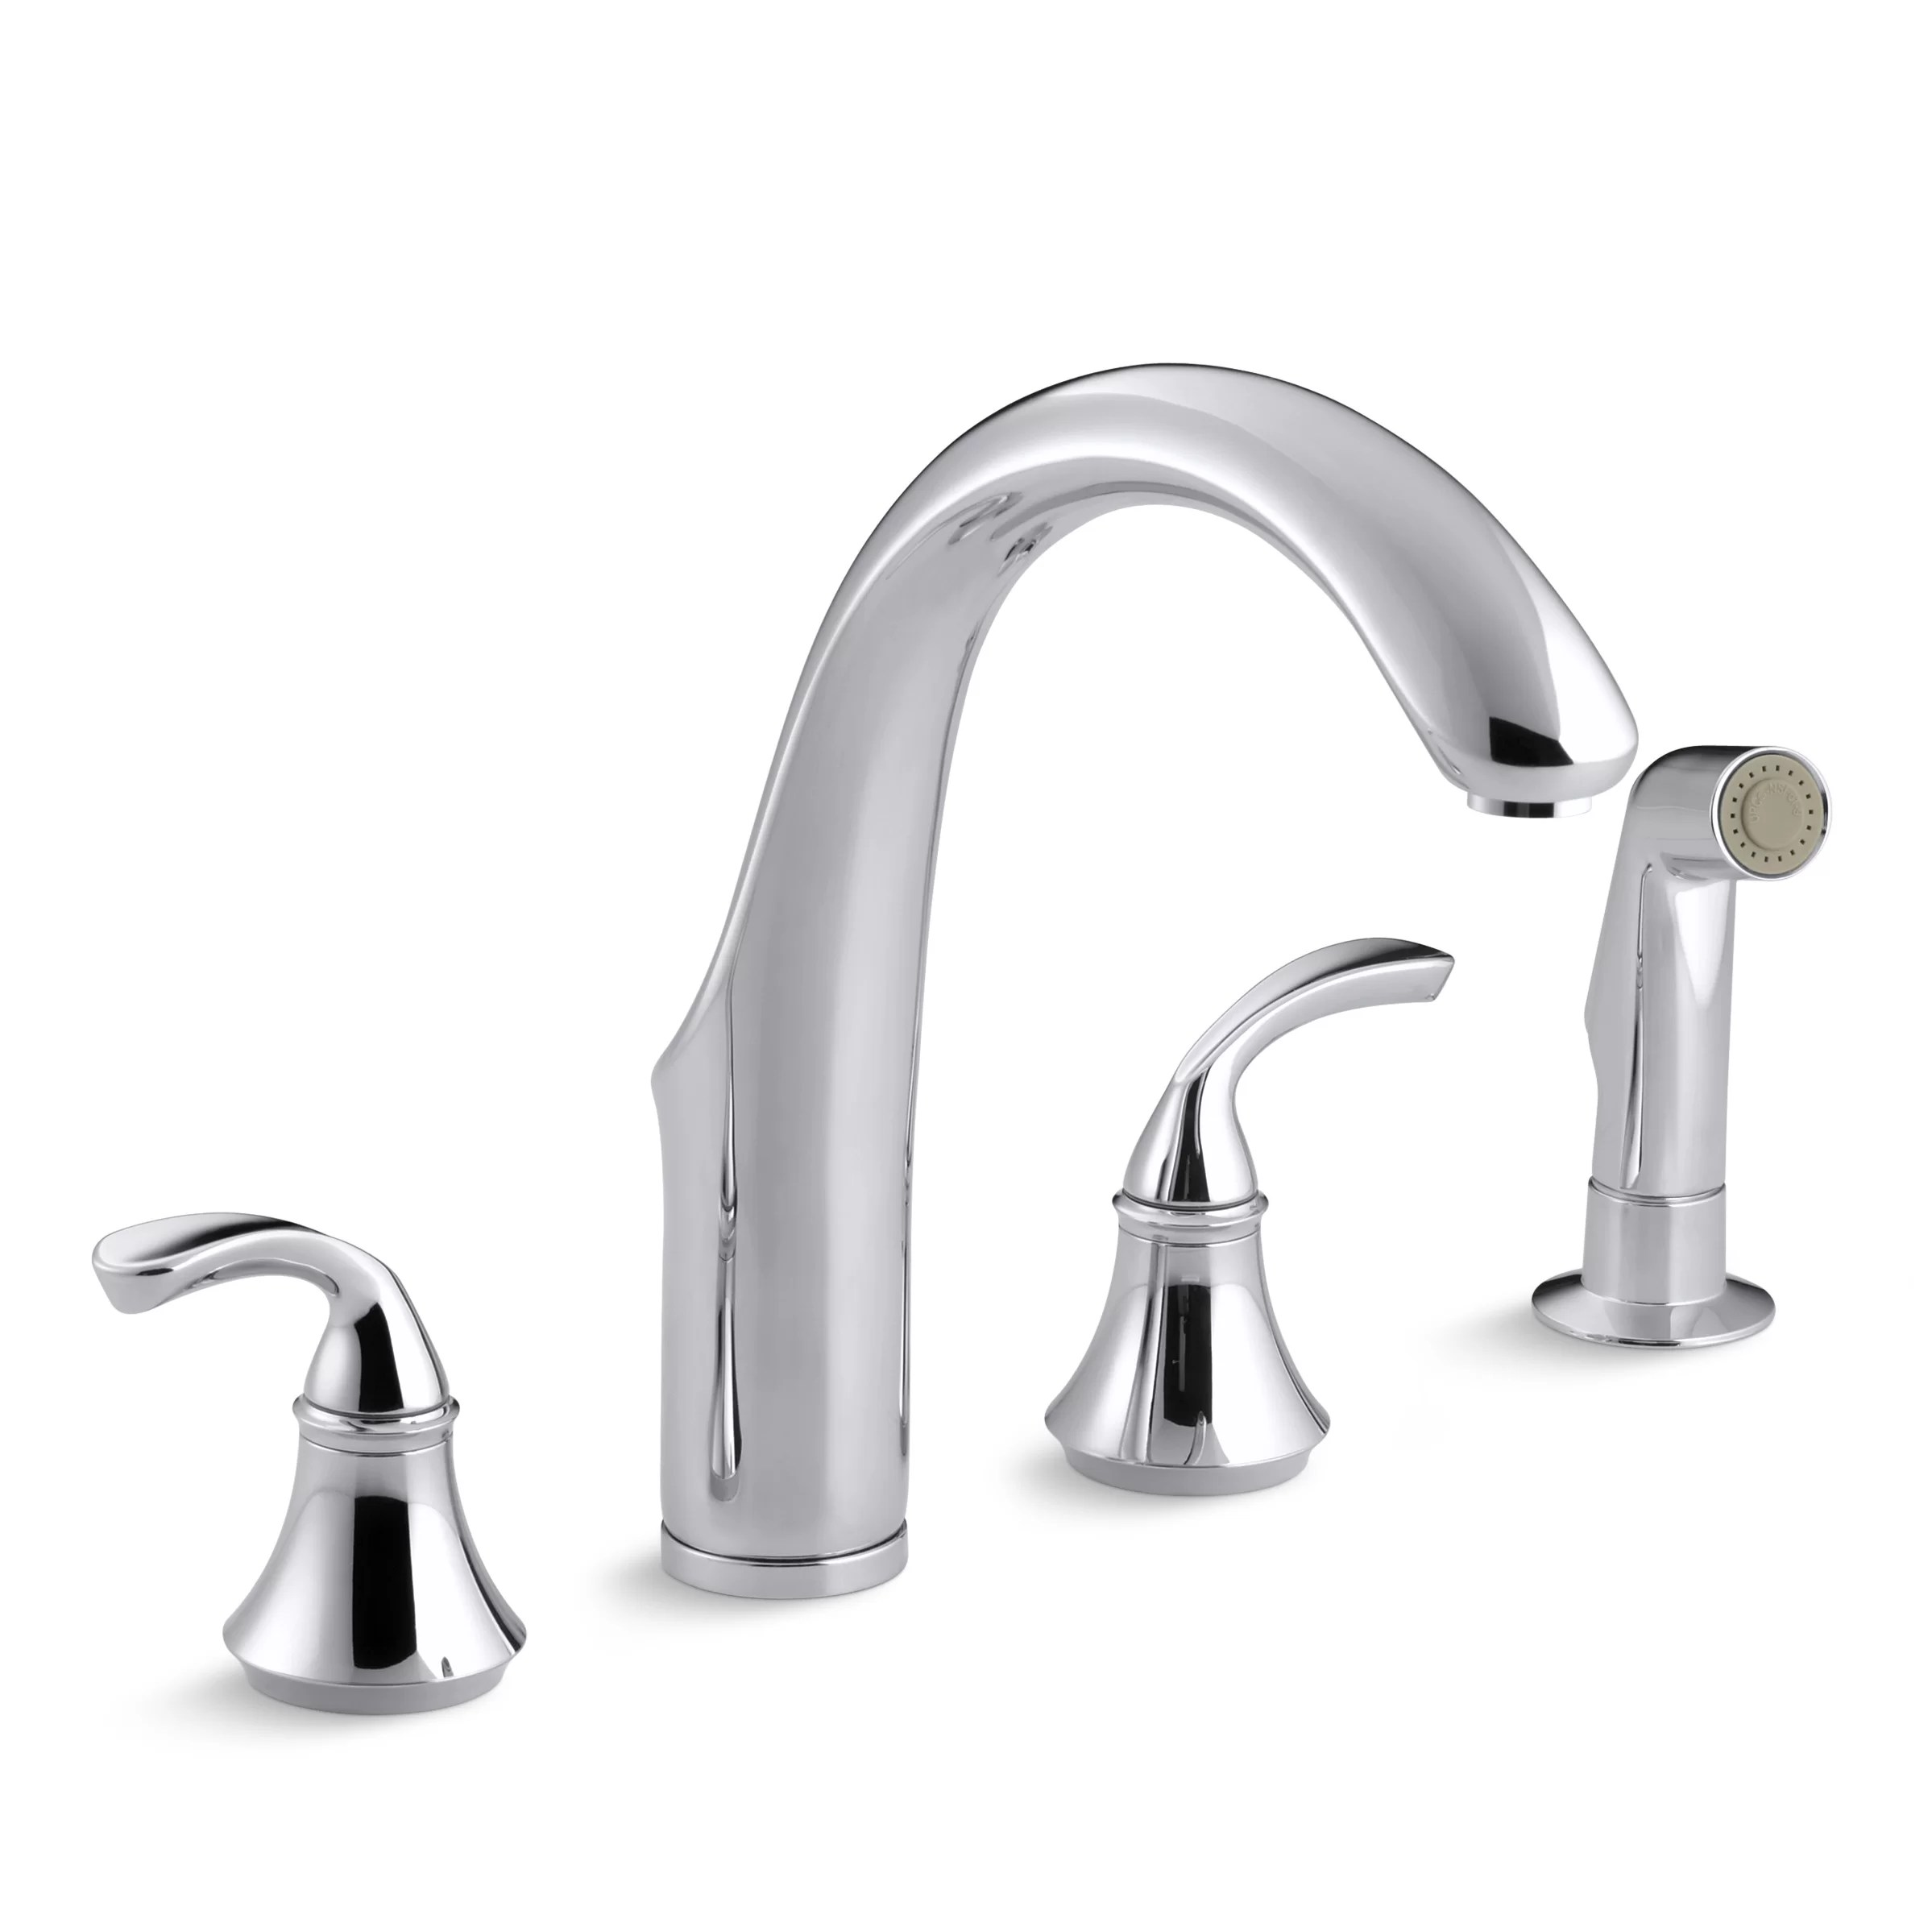 forte 4 hole kitchen sink faucet with 7 3 4 spout matching finish sidespray